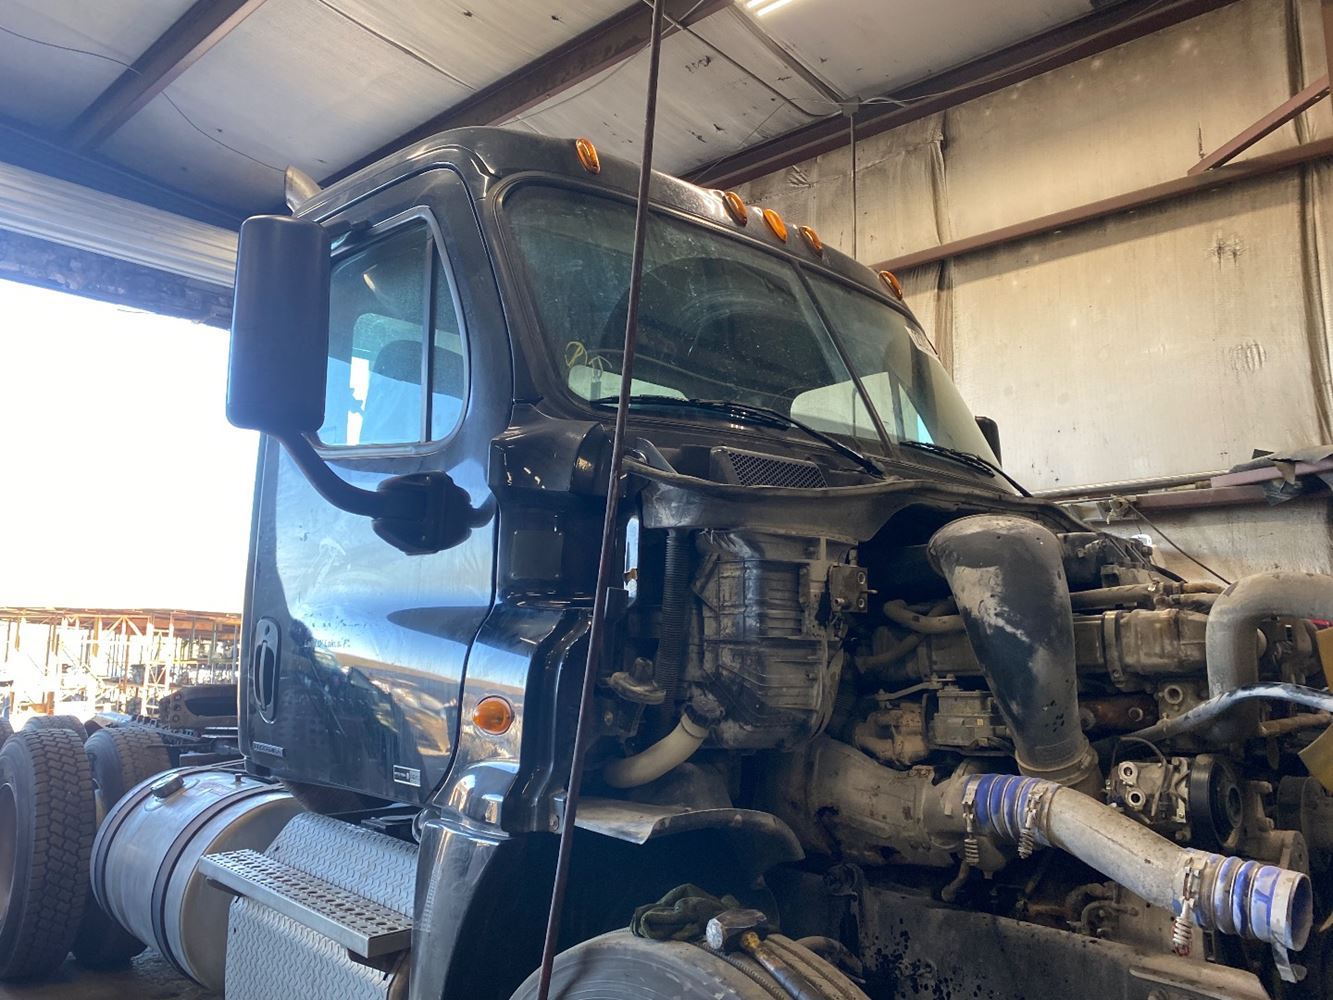 2012 FREIGHTLINER CASCADIA 125 CAB TRUCK PARTS #702178